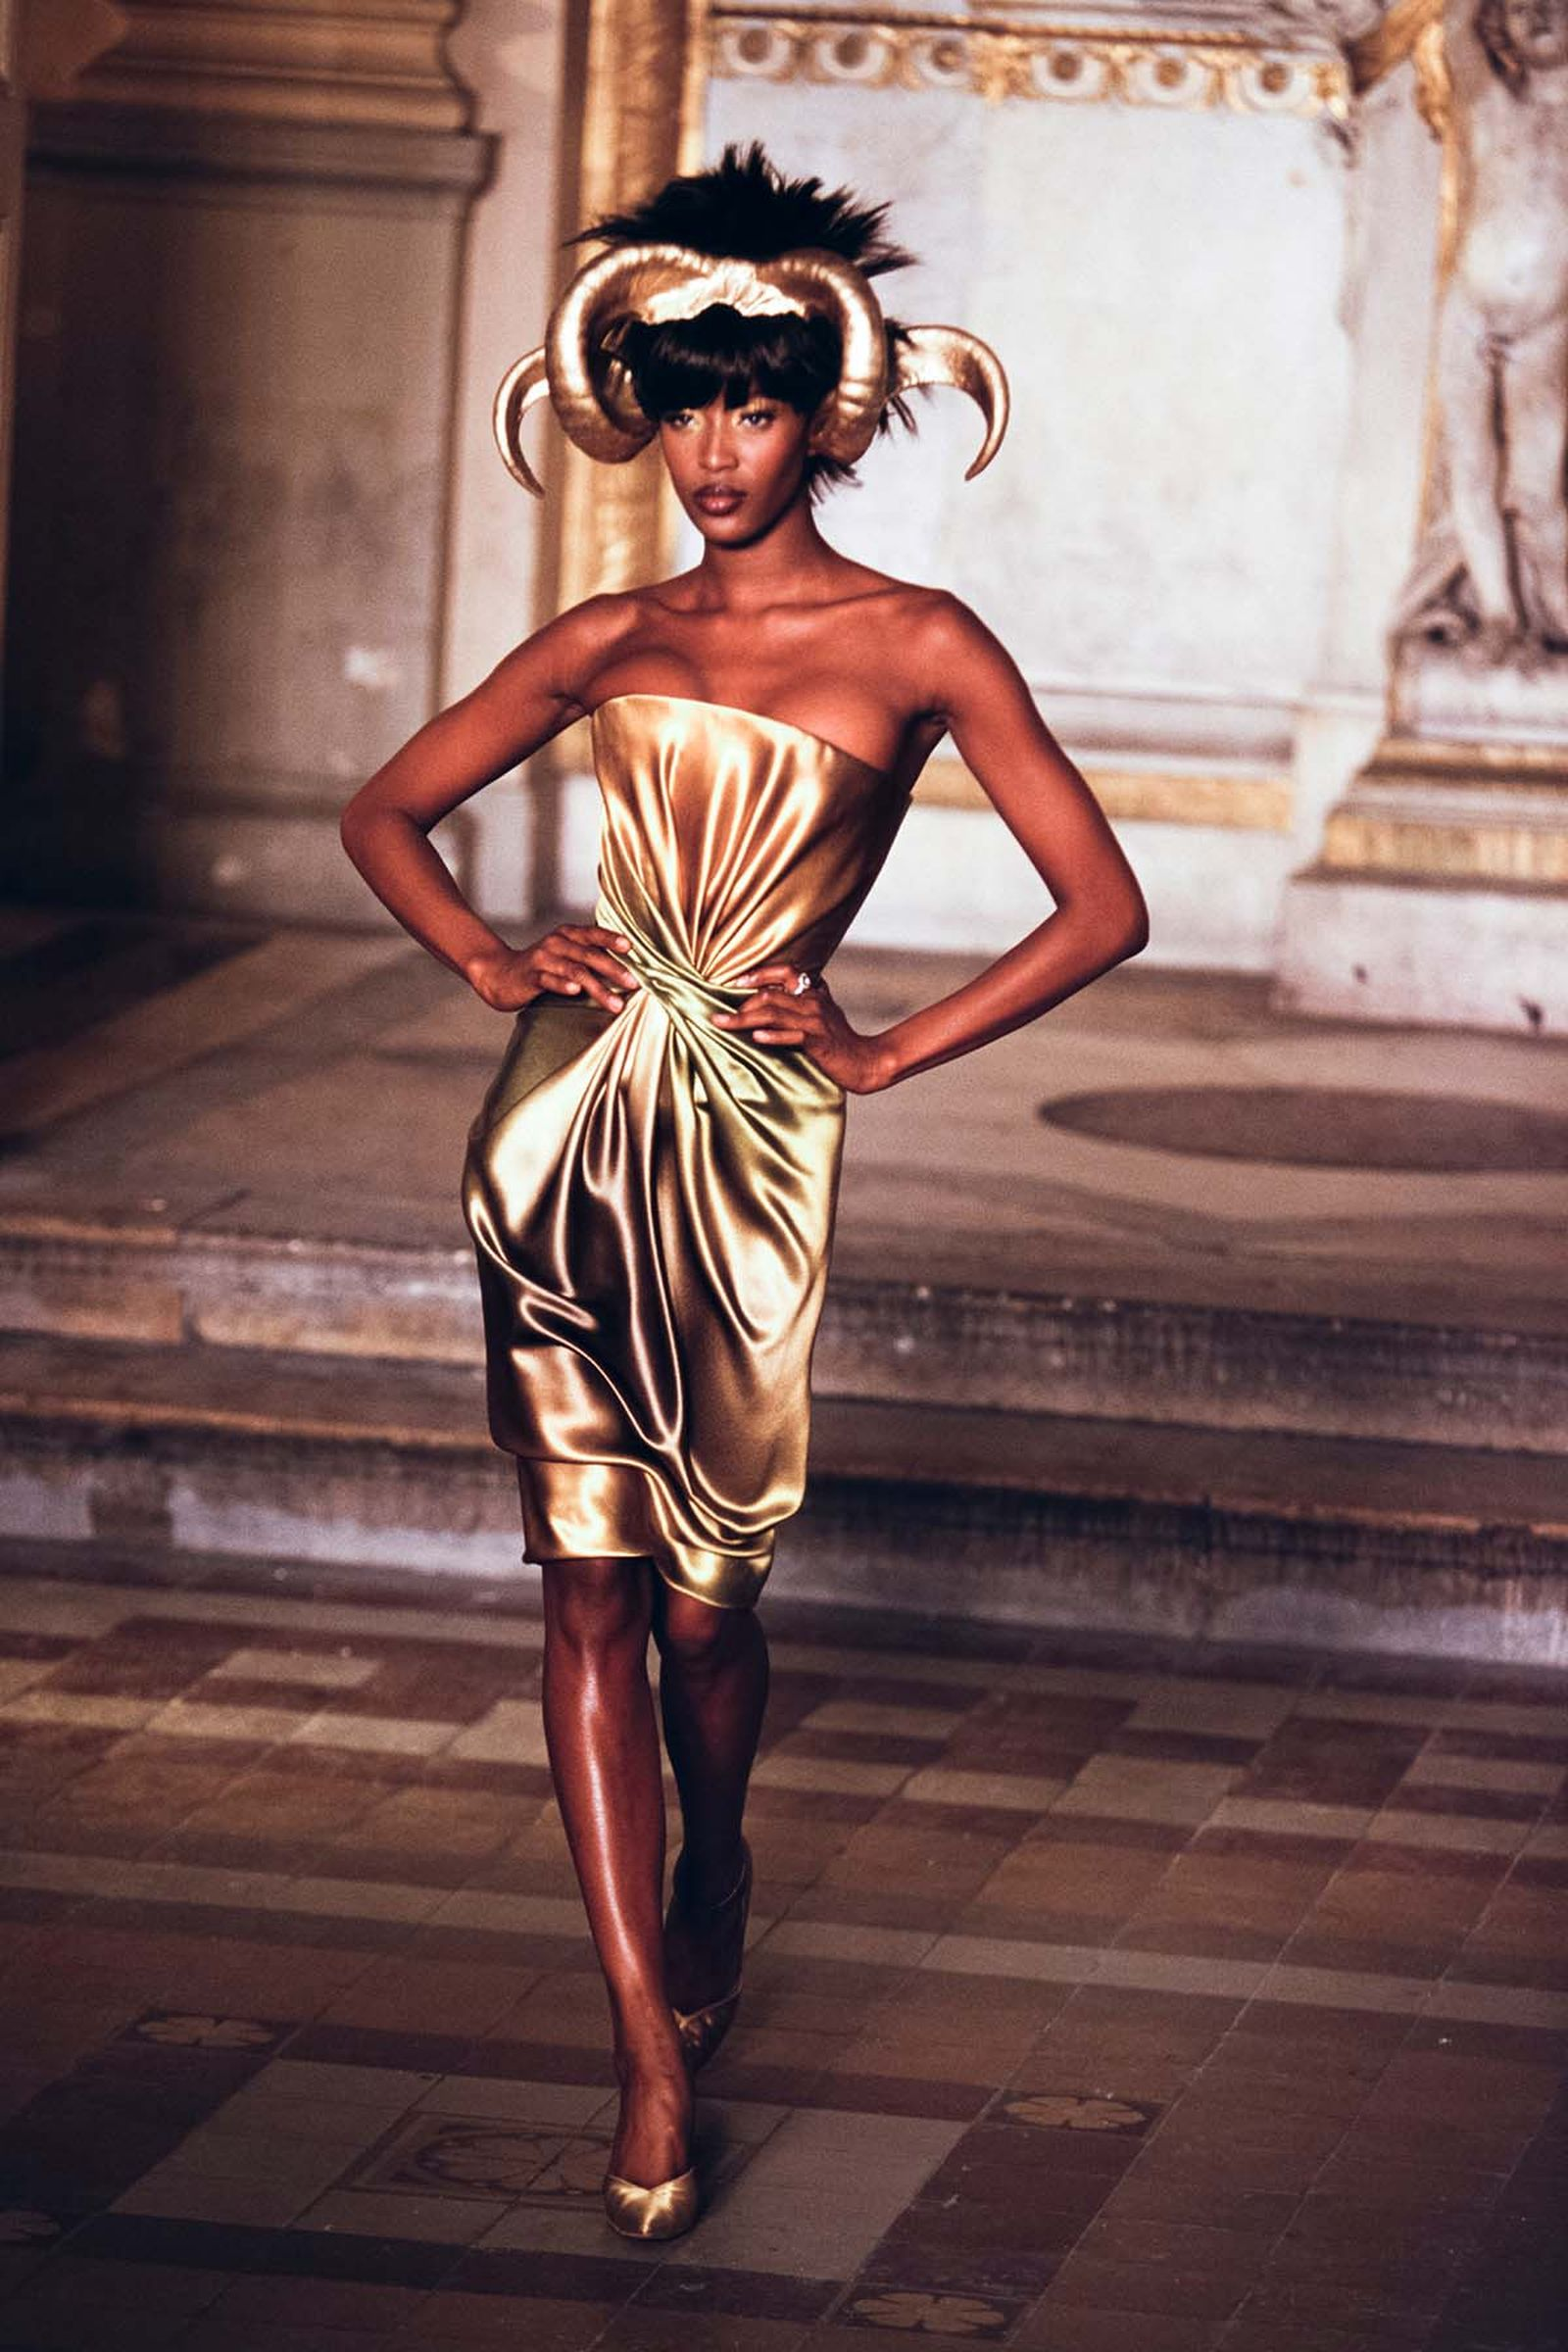 Naomi Campbell walks the runway of Givenchy's Fall/Winter 1997 couture show at Paris Fashion Week.